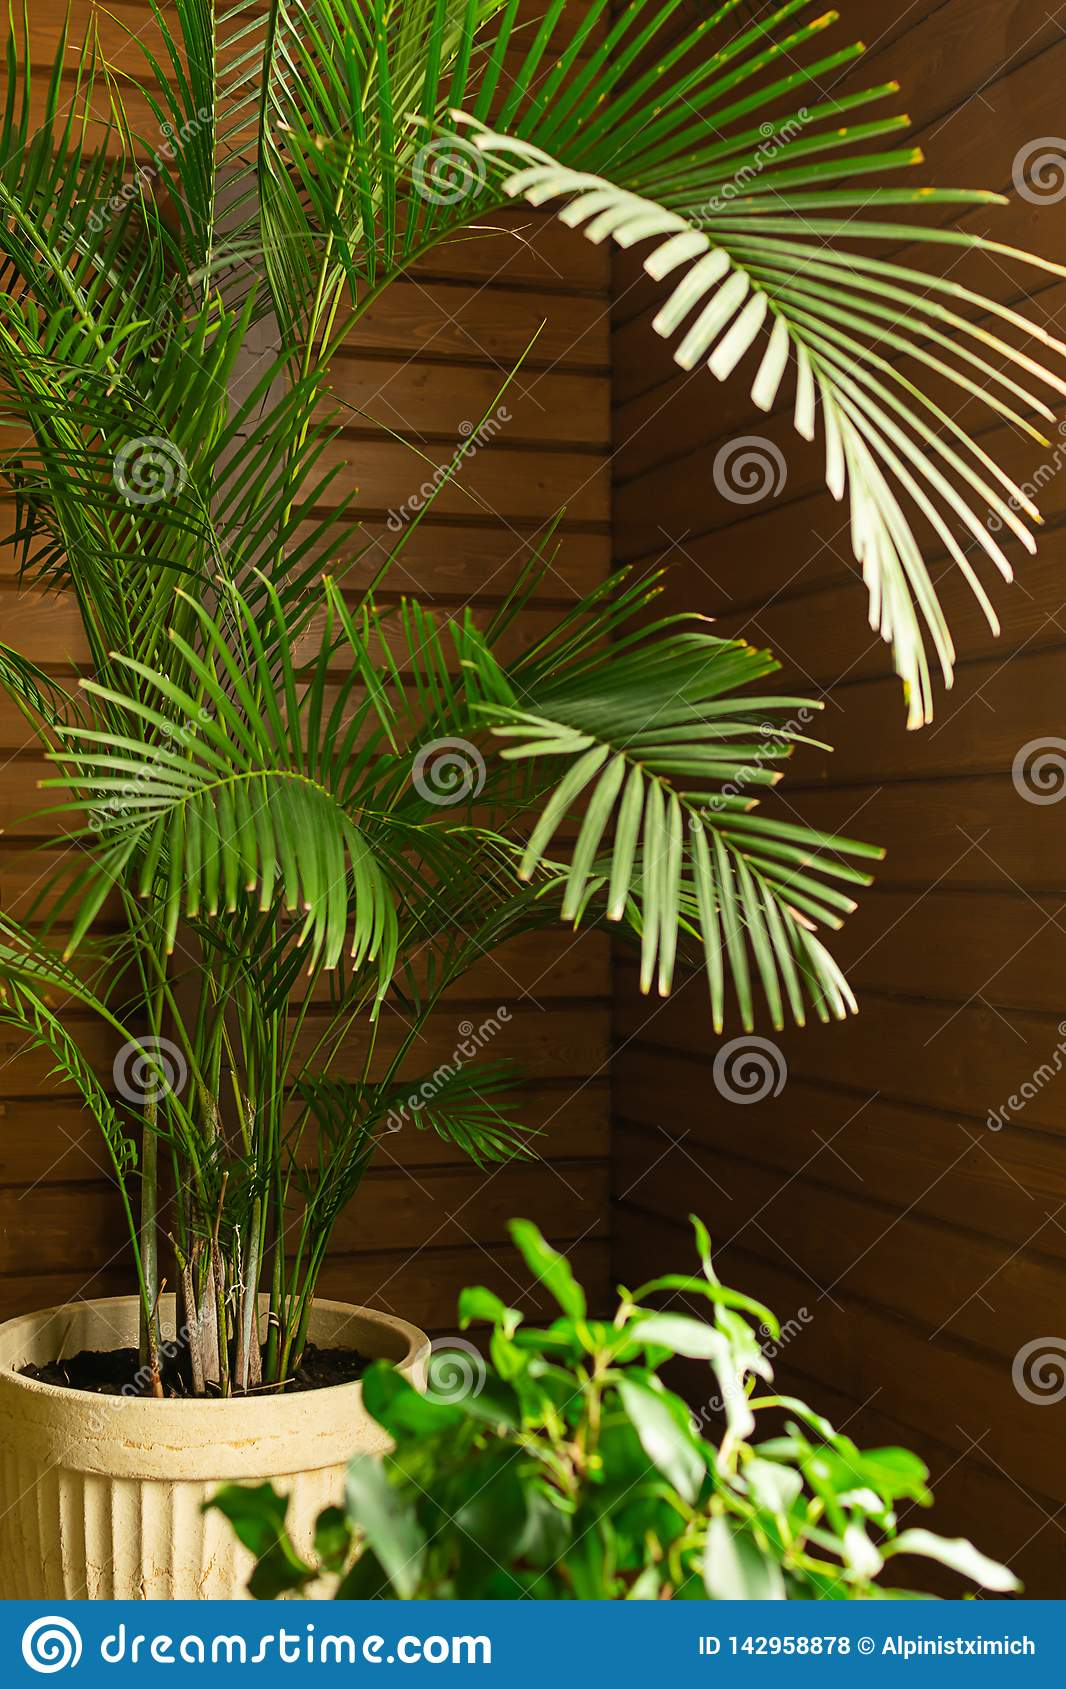 A large green tropical palm tree plant in a pot in the conservatory conservatory. Flowers in the interior.